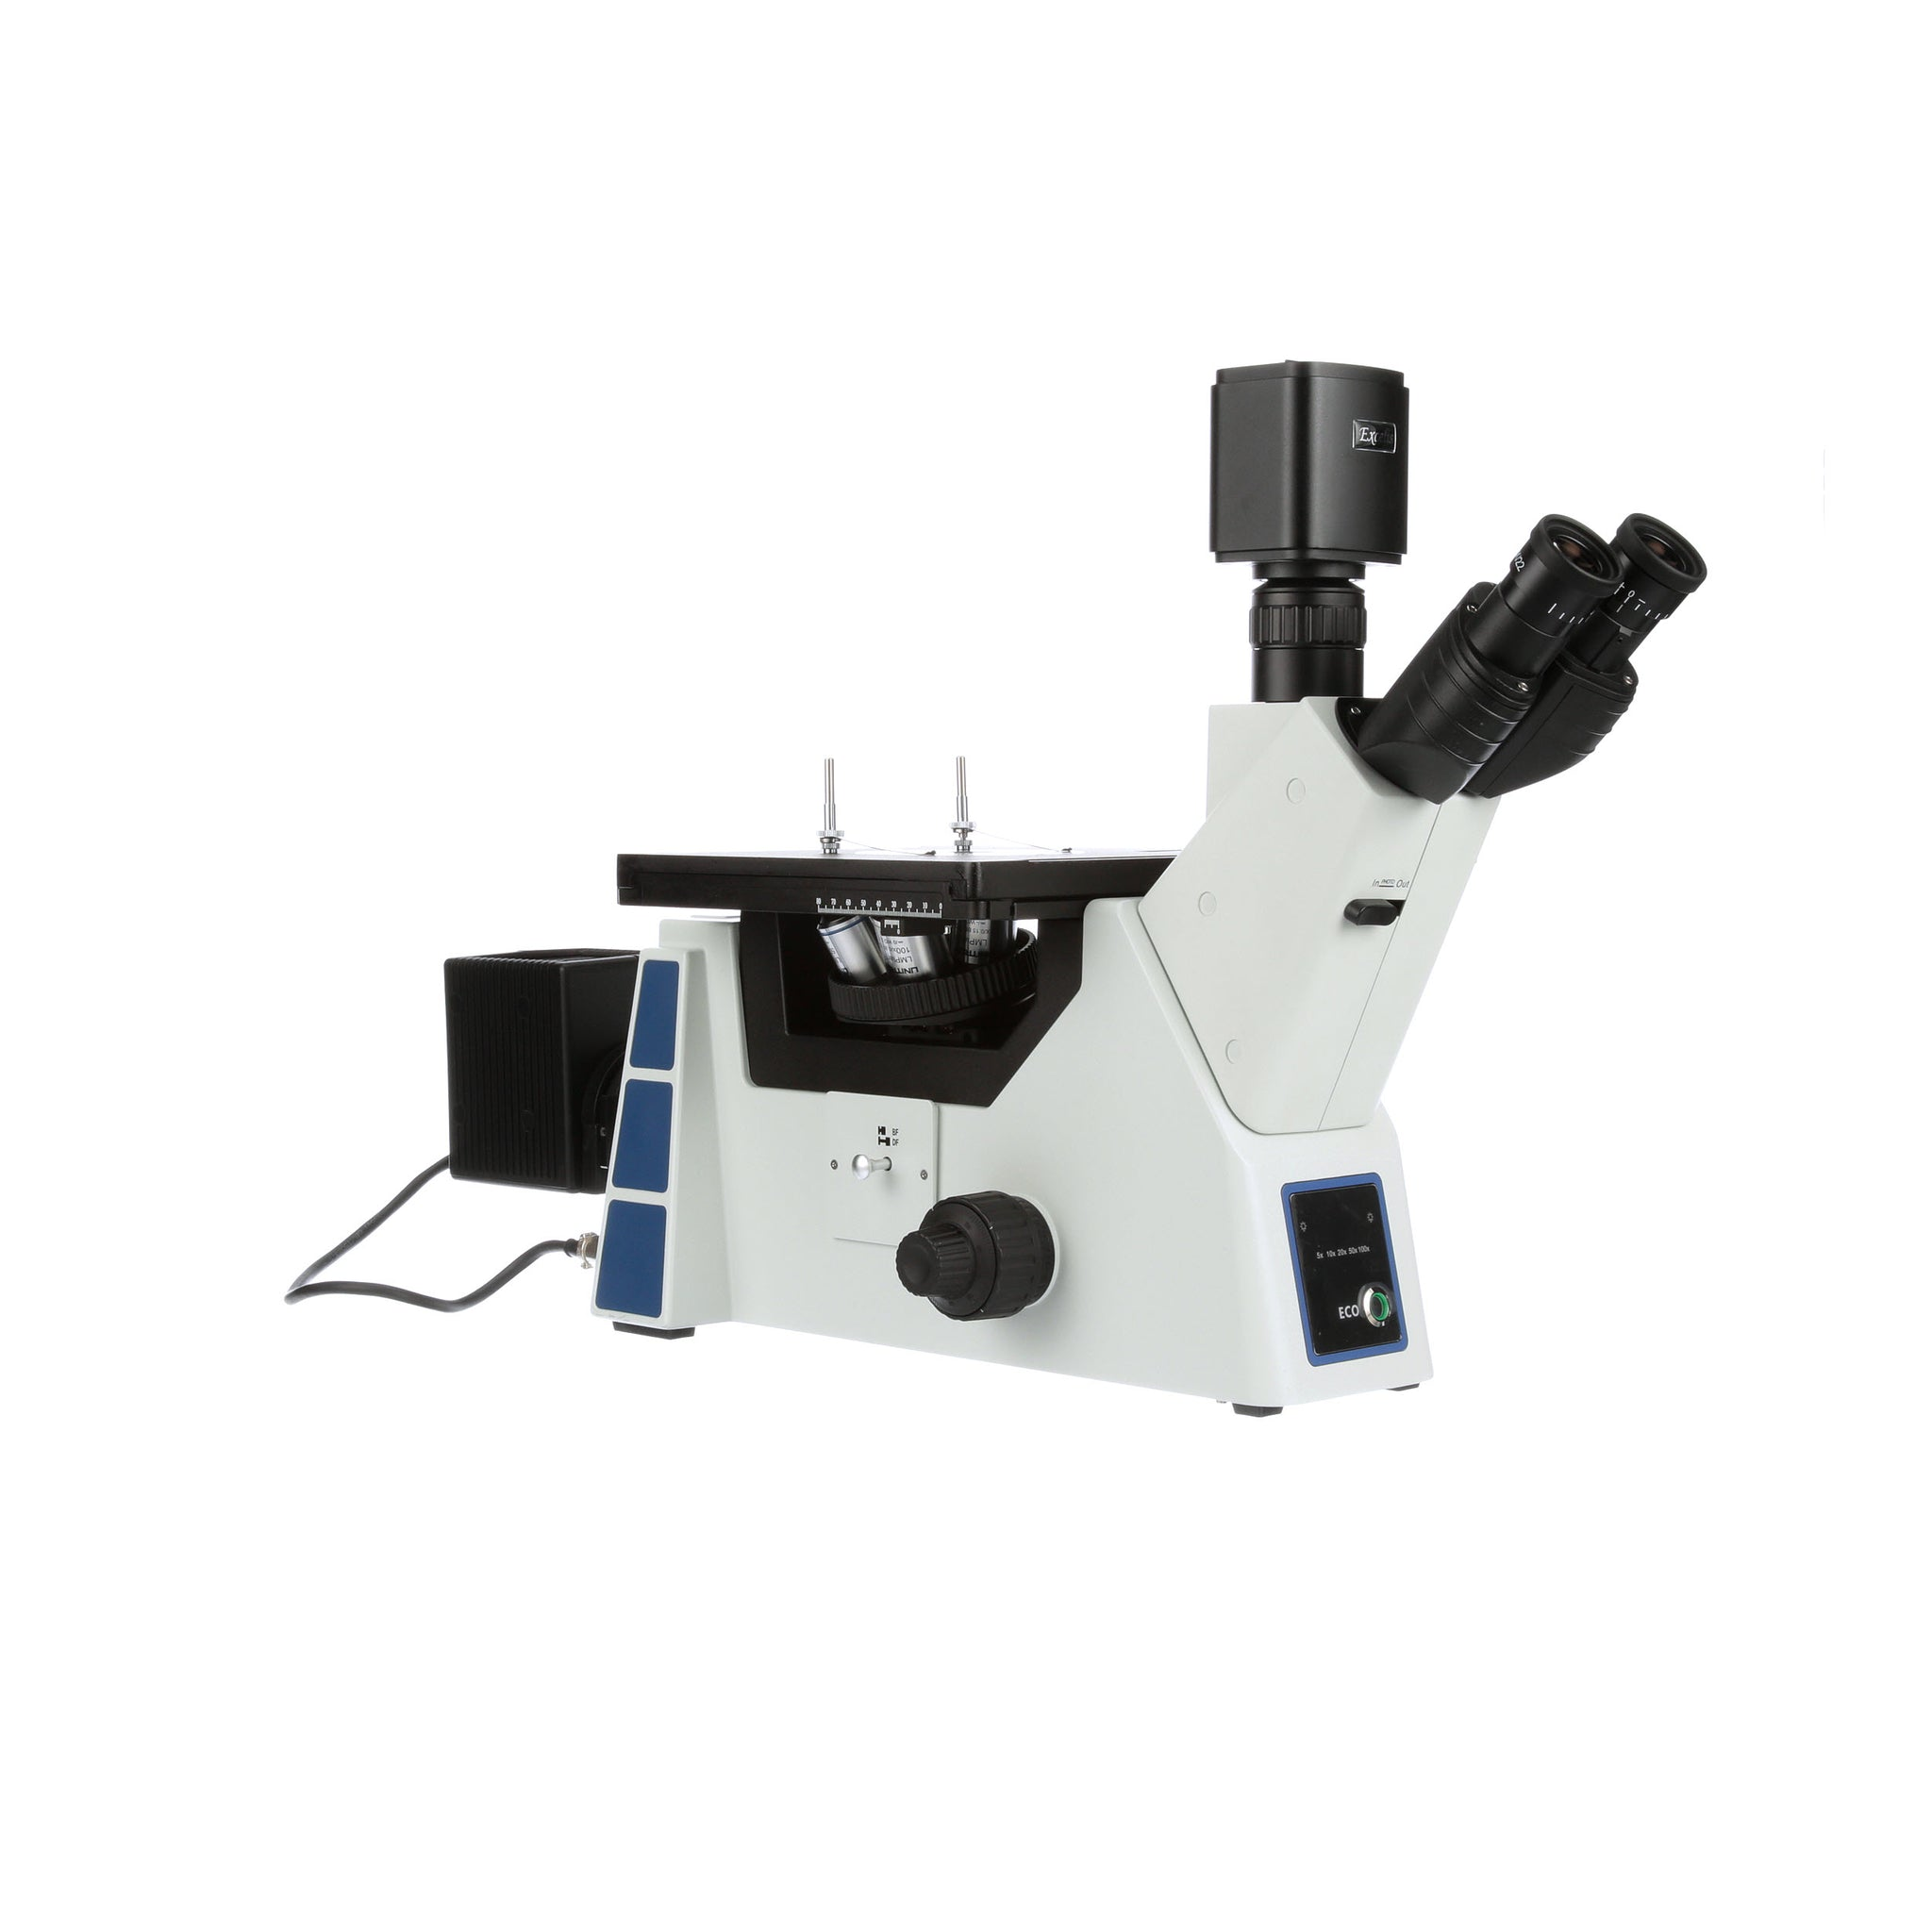 Unitron Versamet 4 Inverted Metallurgical Brightfield HD Digital Microscope